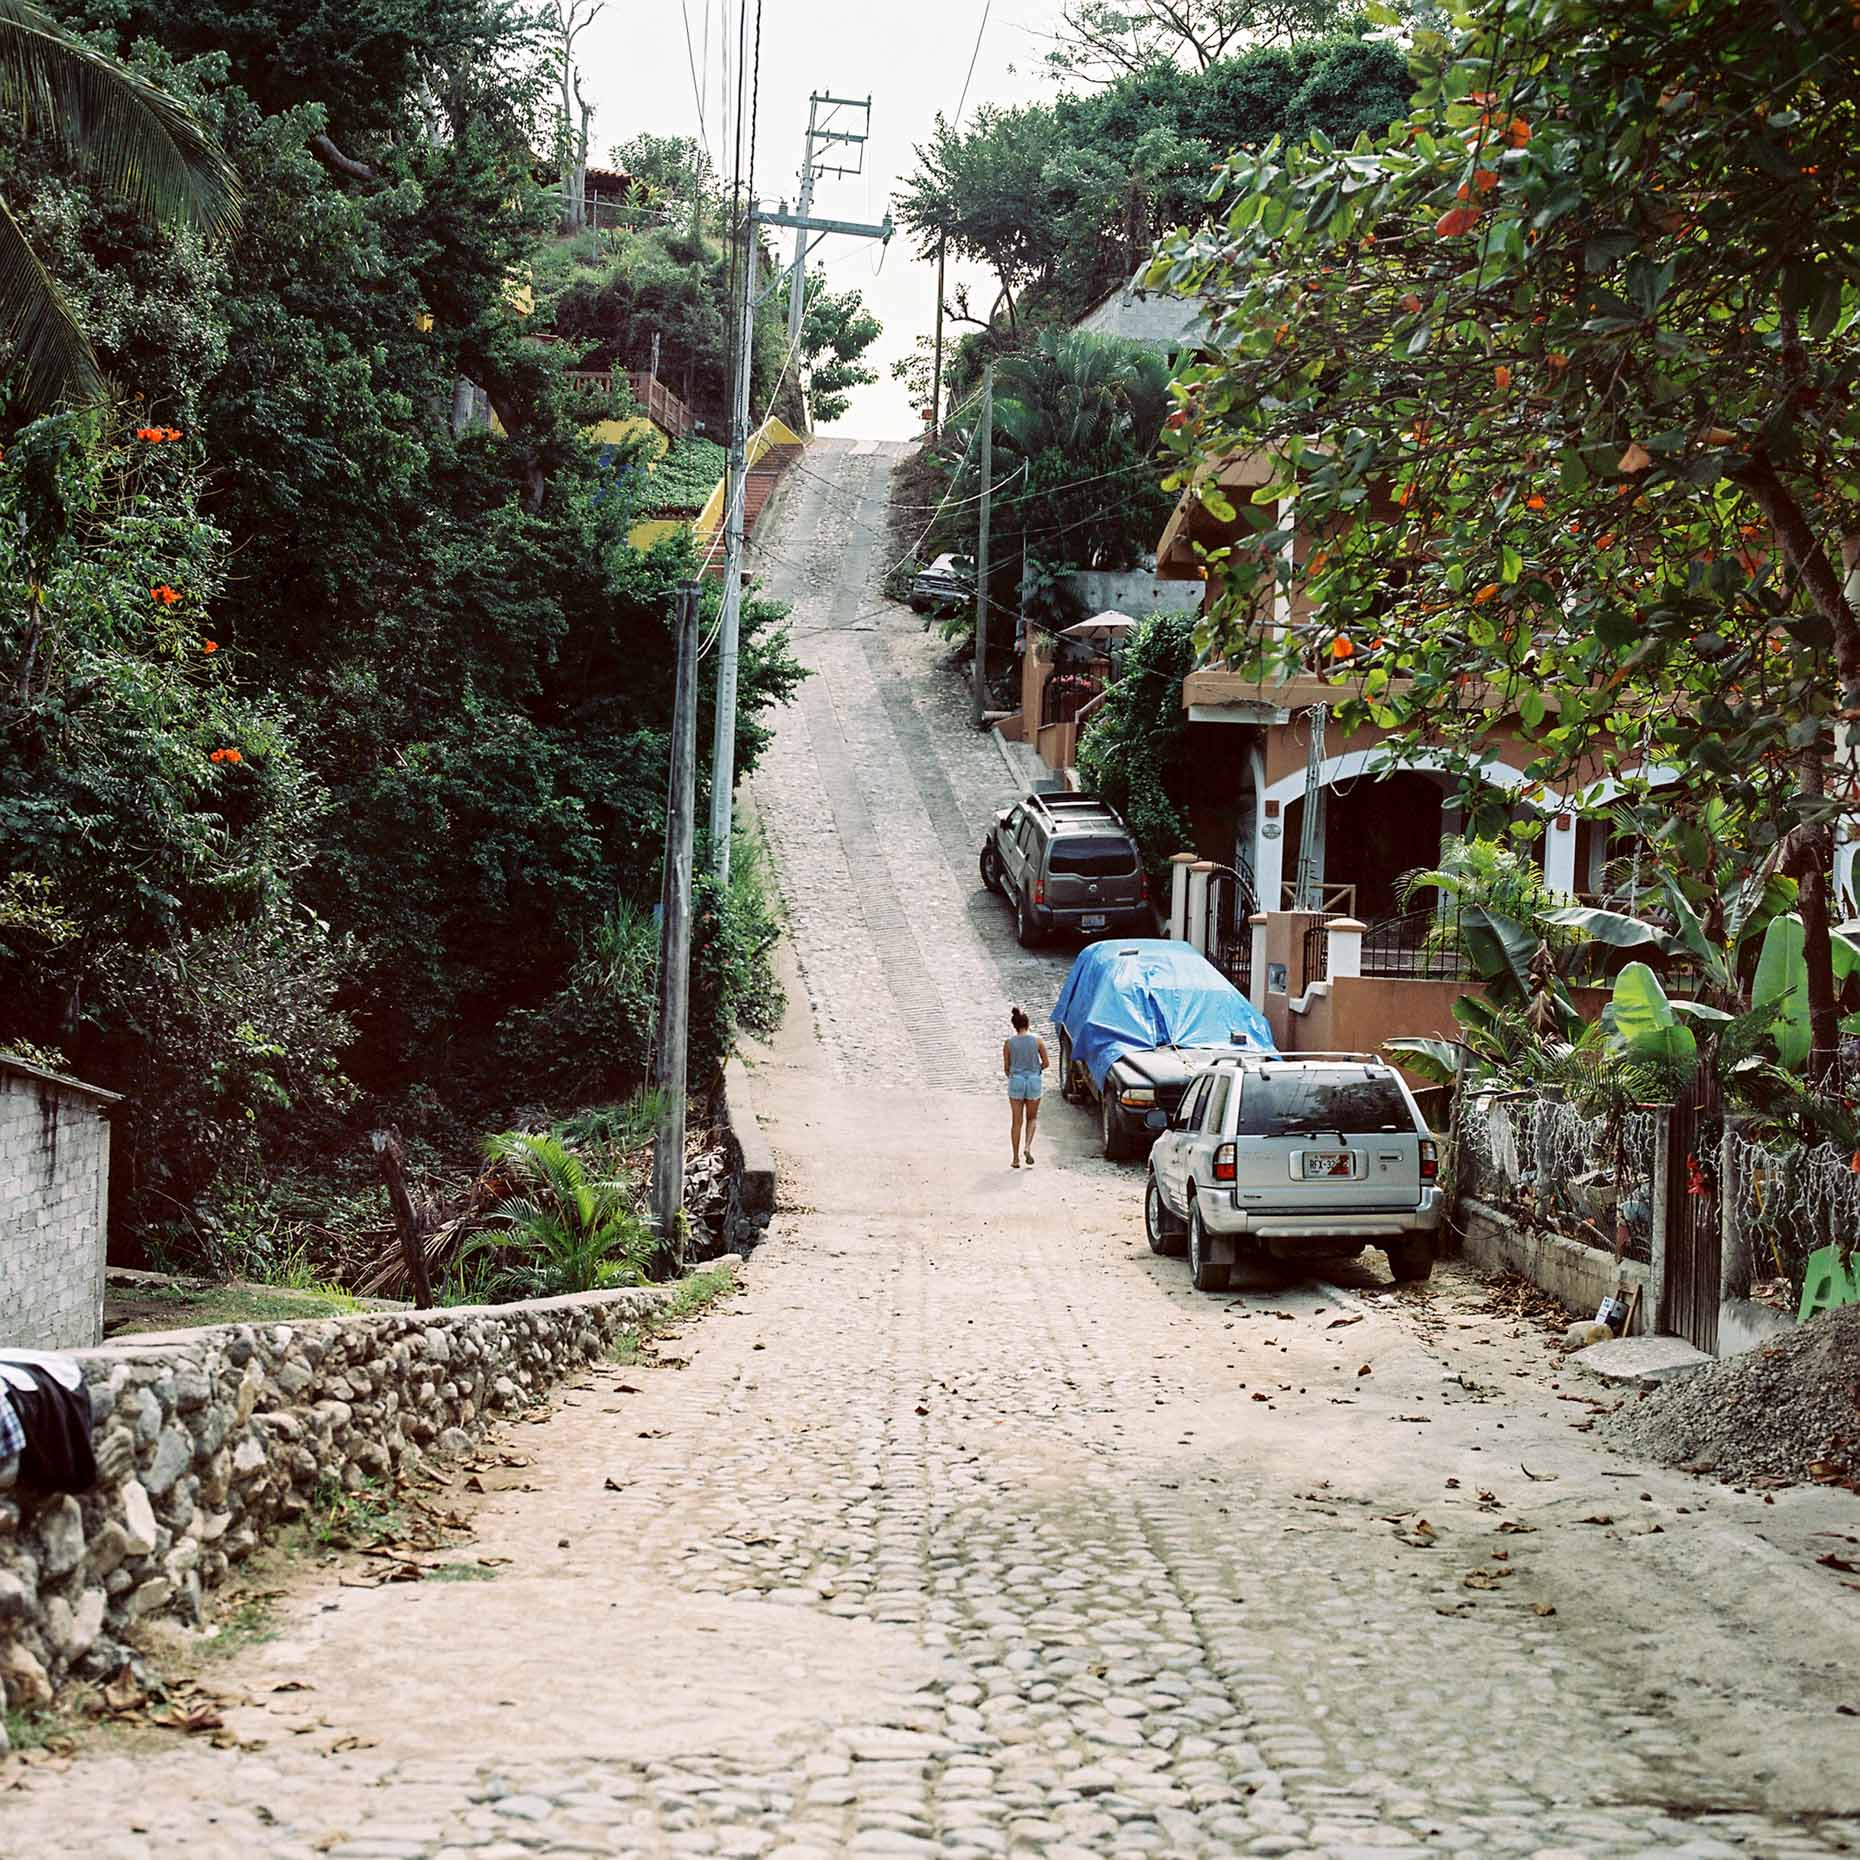 A street in Sayulita Nayarit. Mecico. A sleepy surf town popular with tourists and surfers.